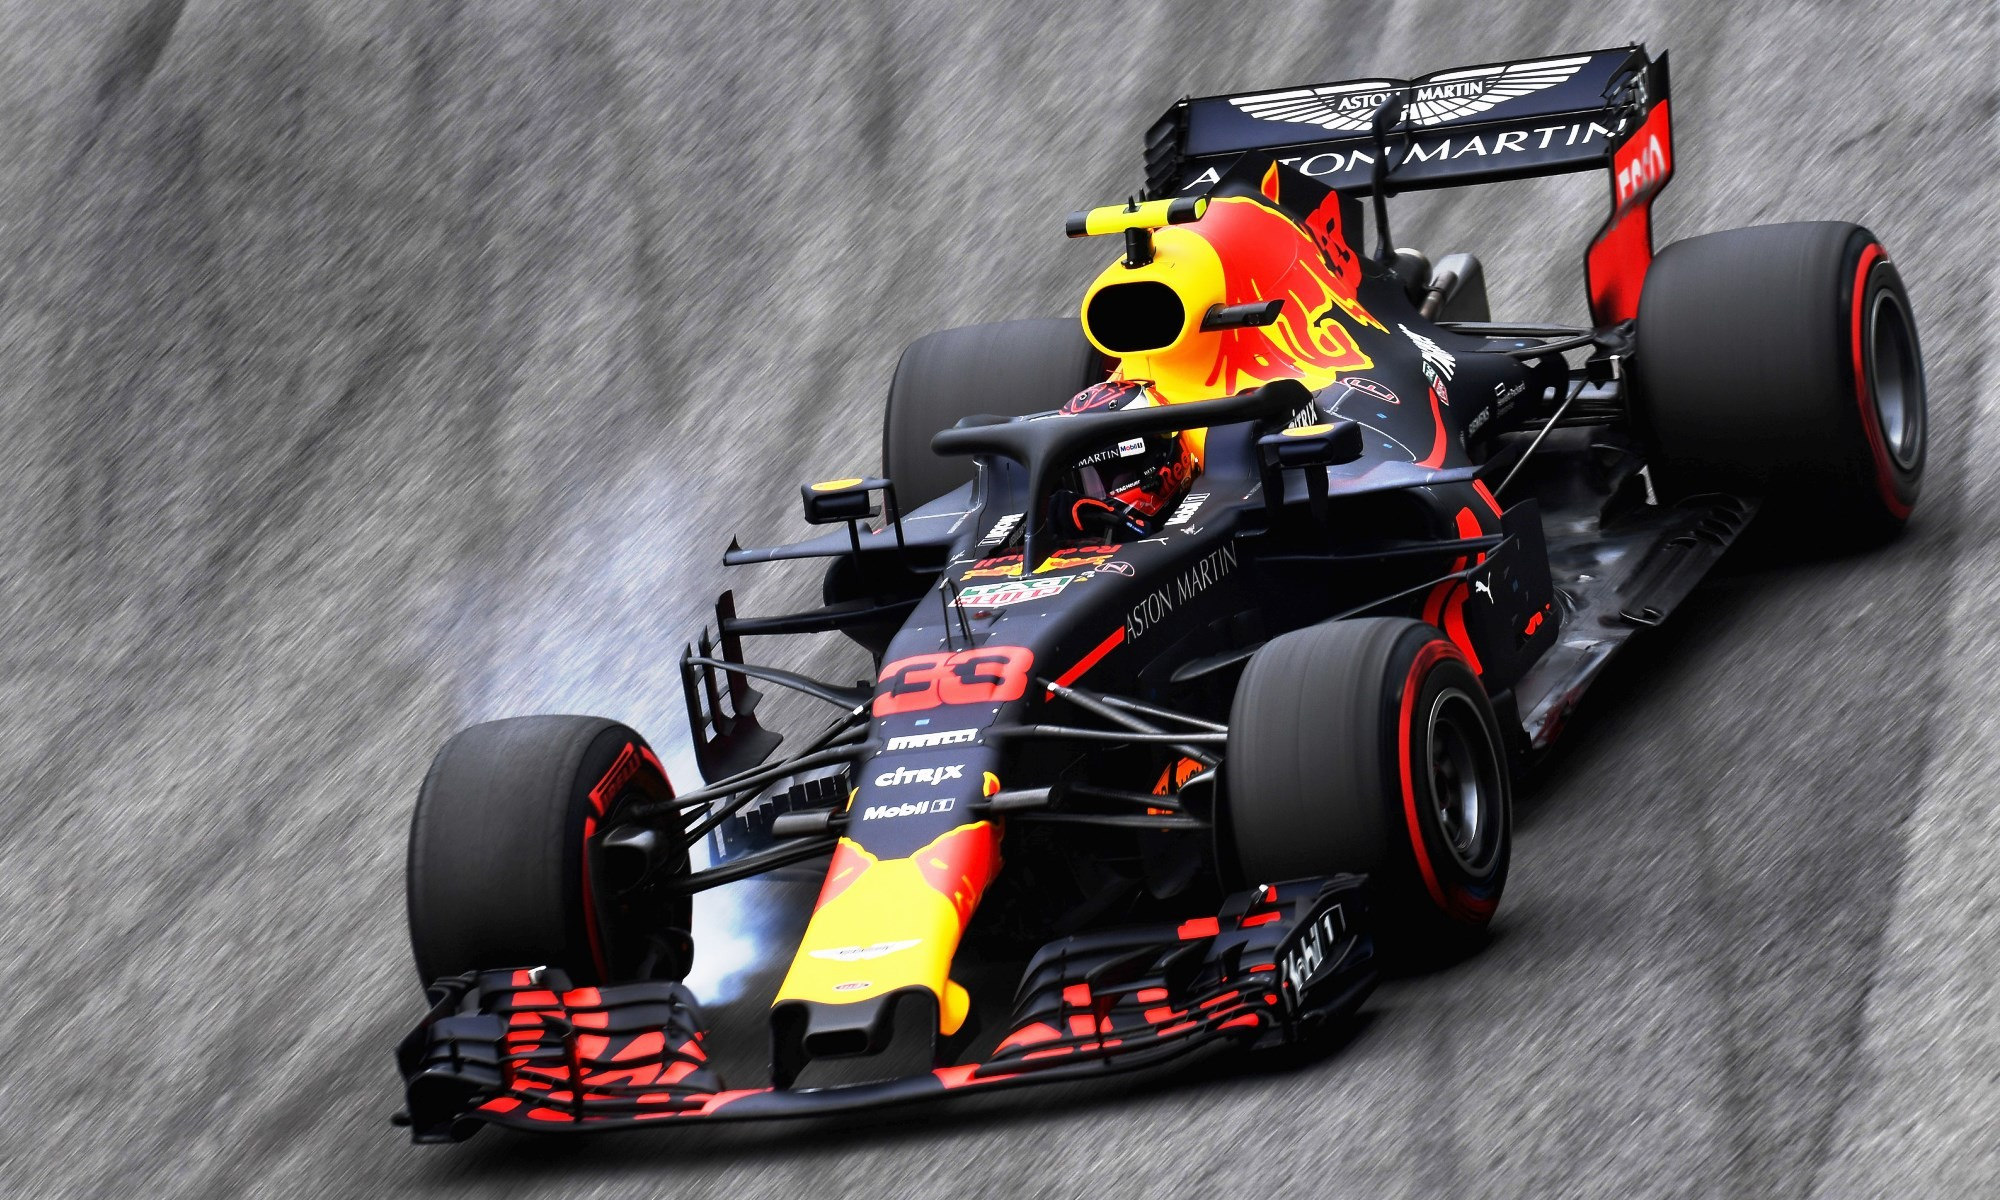 Max Verstappen finished second